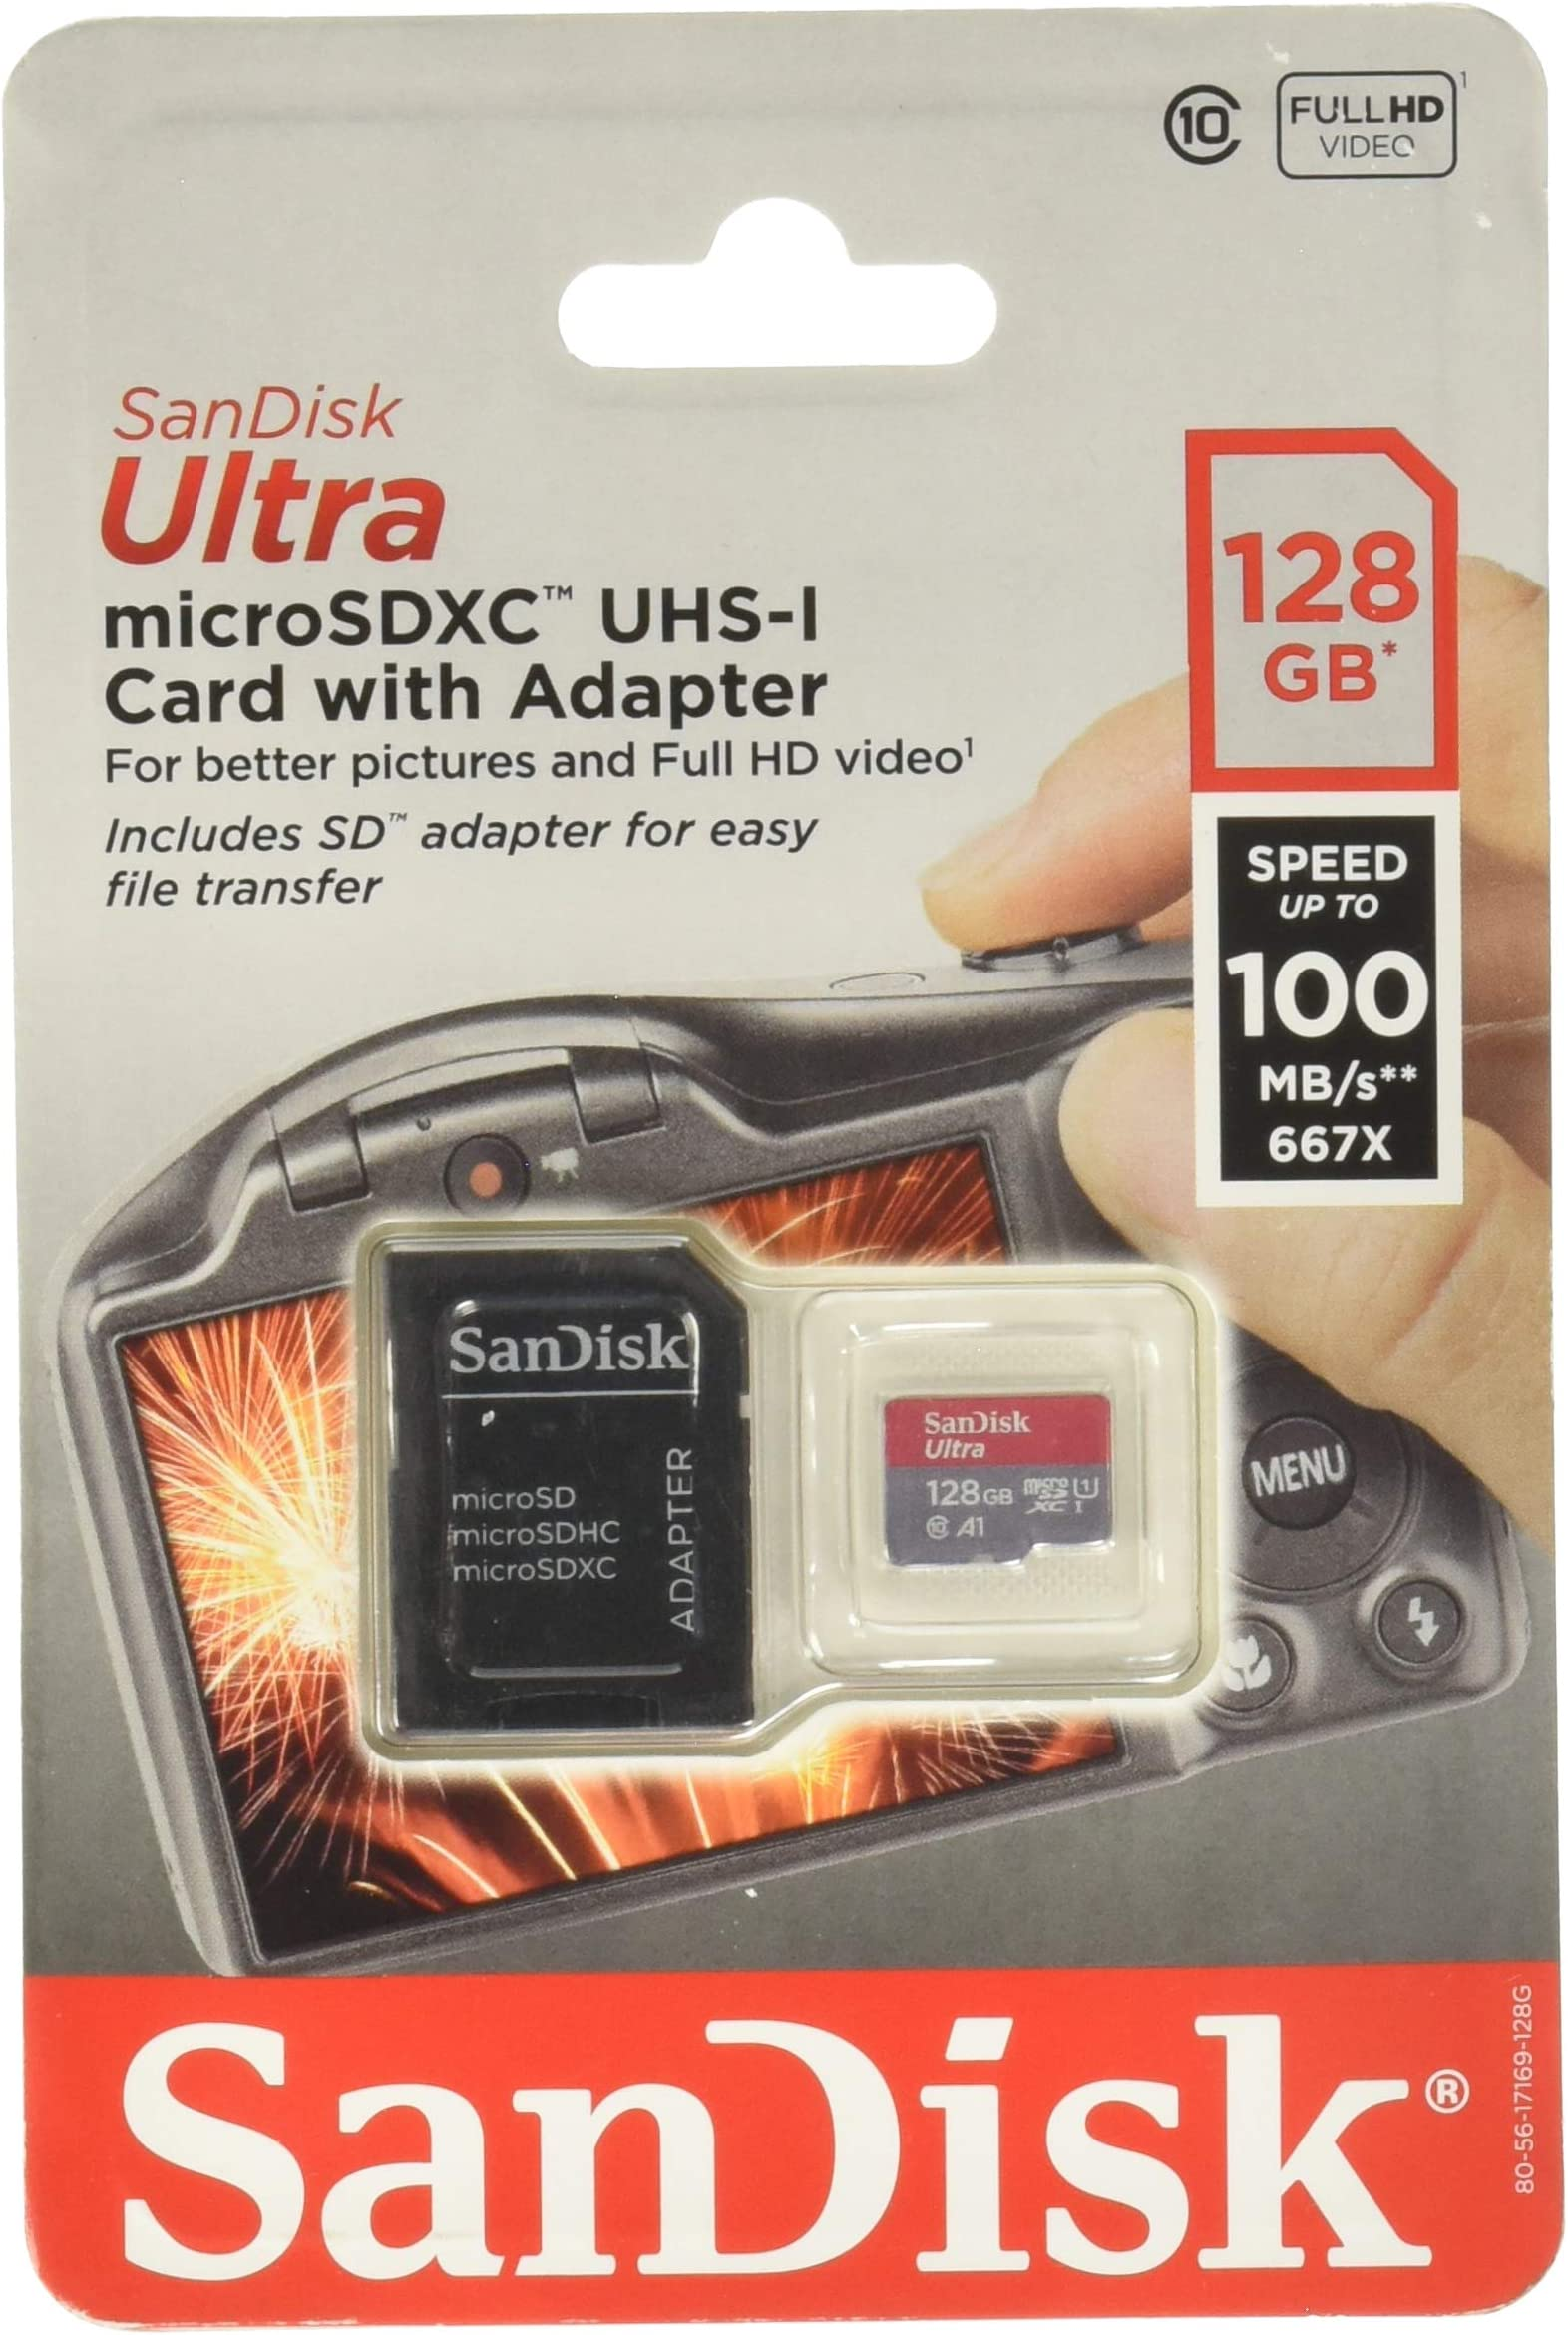 100MBs A1 U1 Works with SanDisk SanDisk Ultra 128GB MicroSDXC Verified for HTC Touch Dual by SanFlash